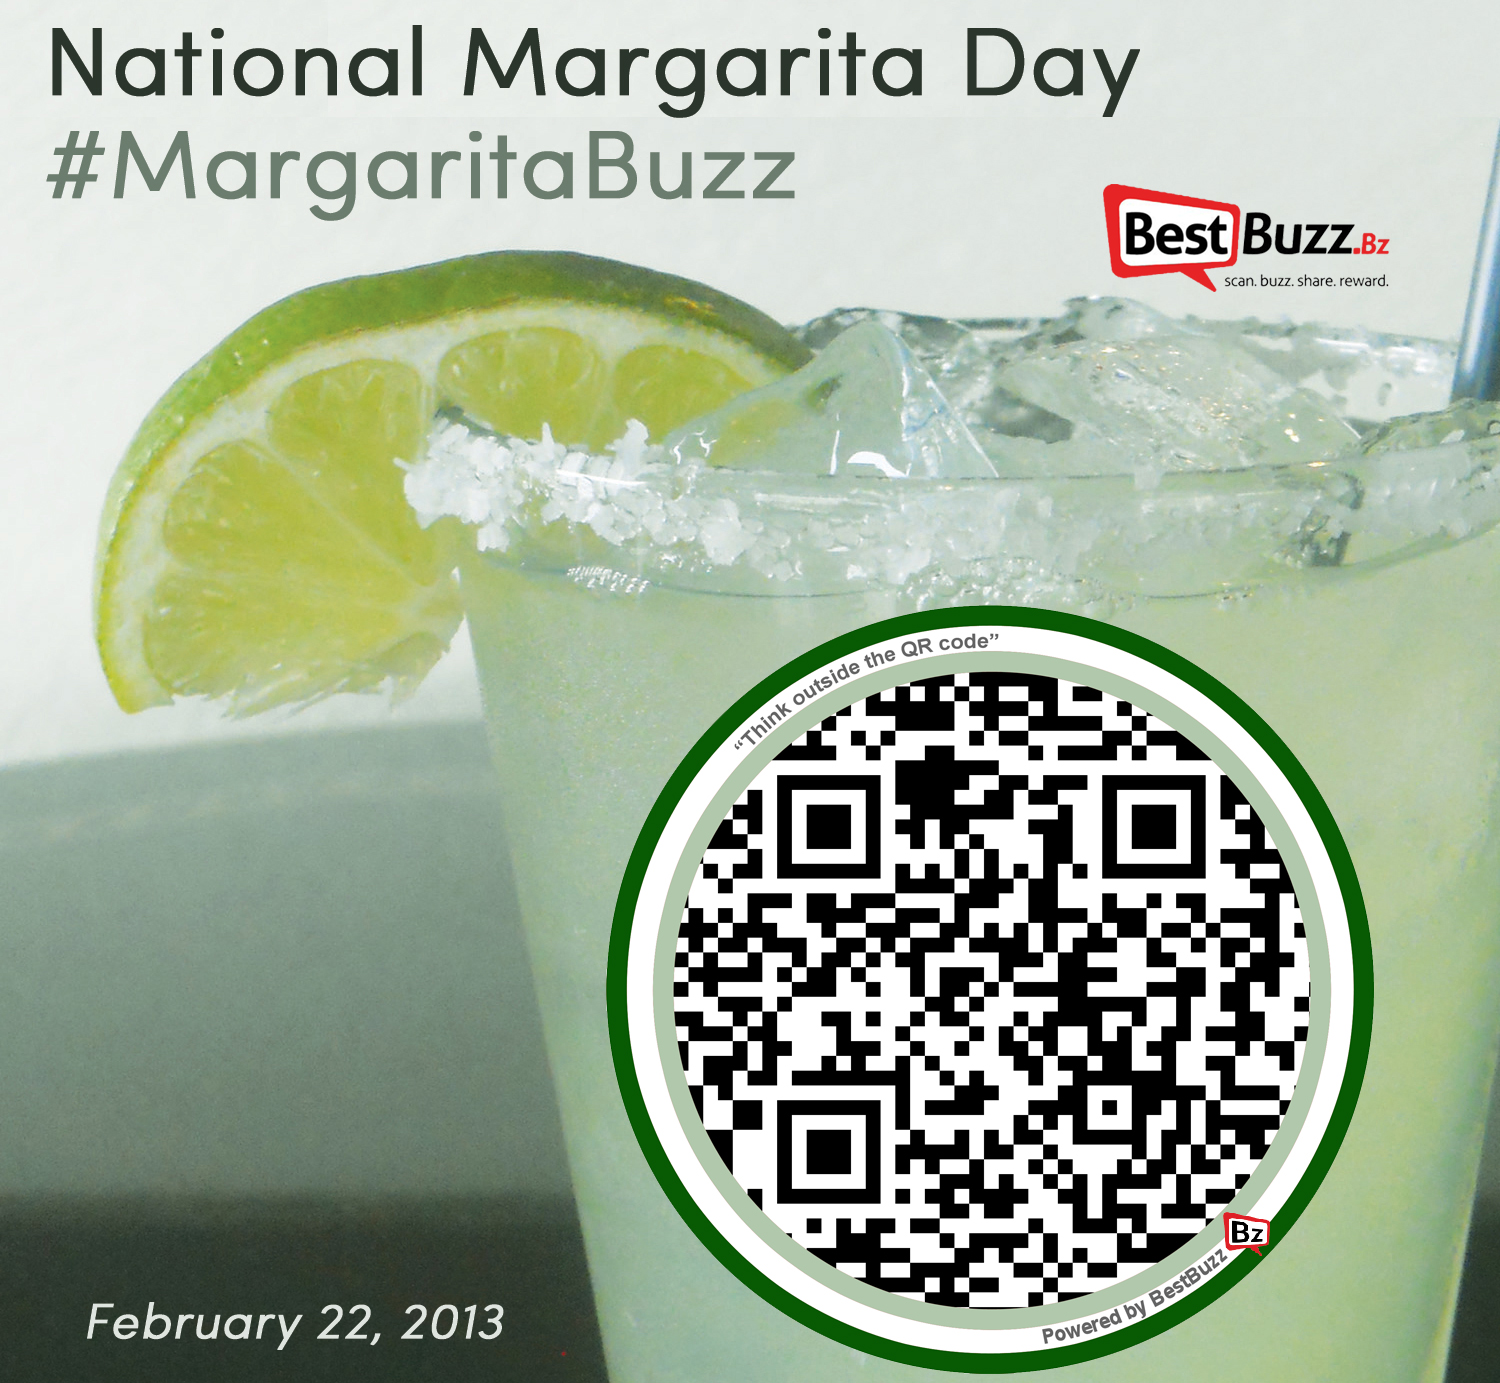 Celebrate National Margarita Day with BestBuzz Text BUZZ to 63566